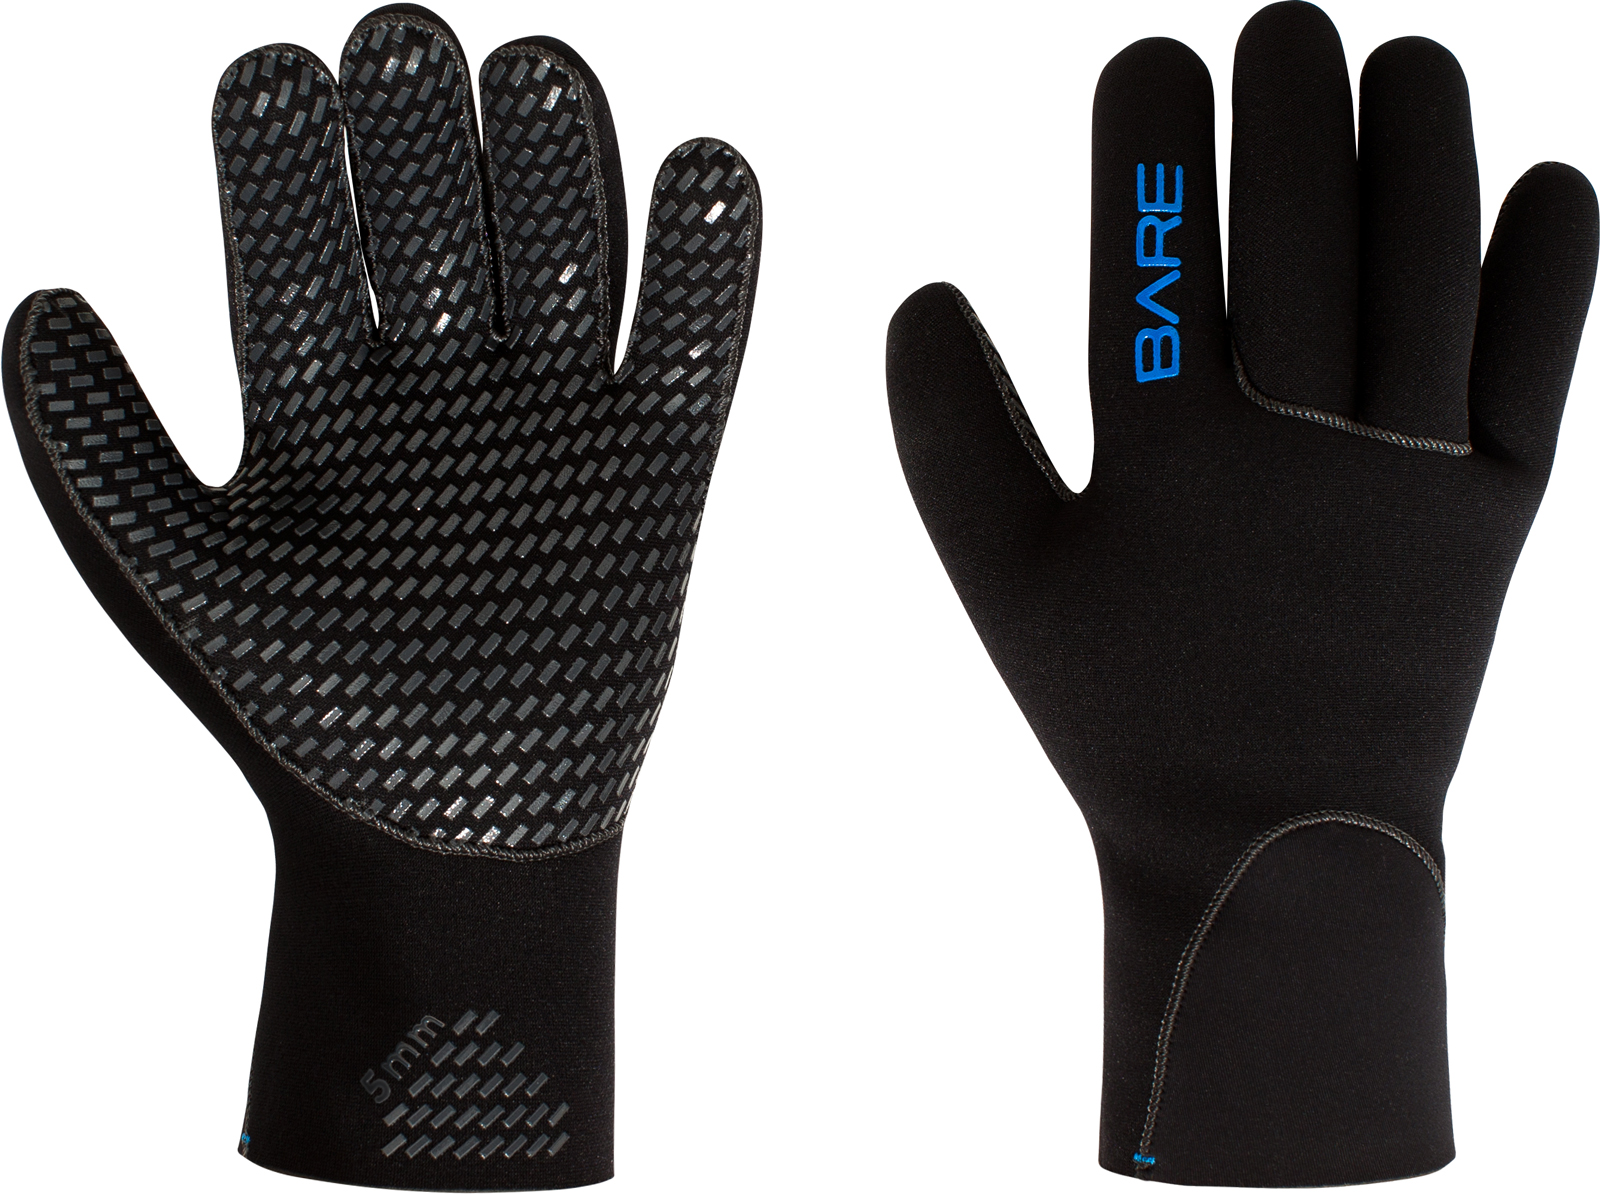 BARE Sports HANDSKER 5MM GLOVE 5-FINGER - KORT SKAFT